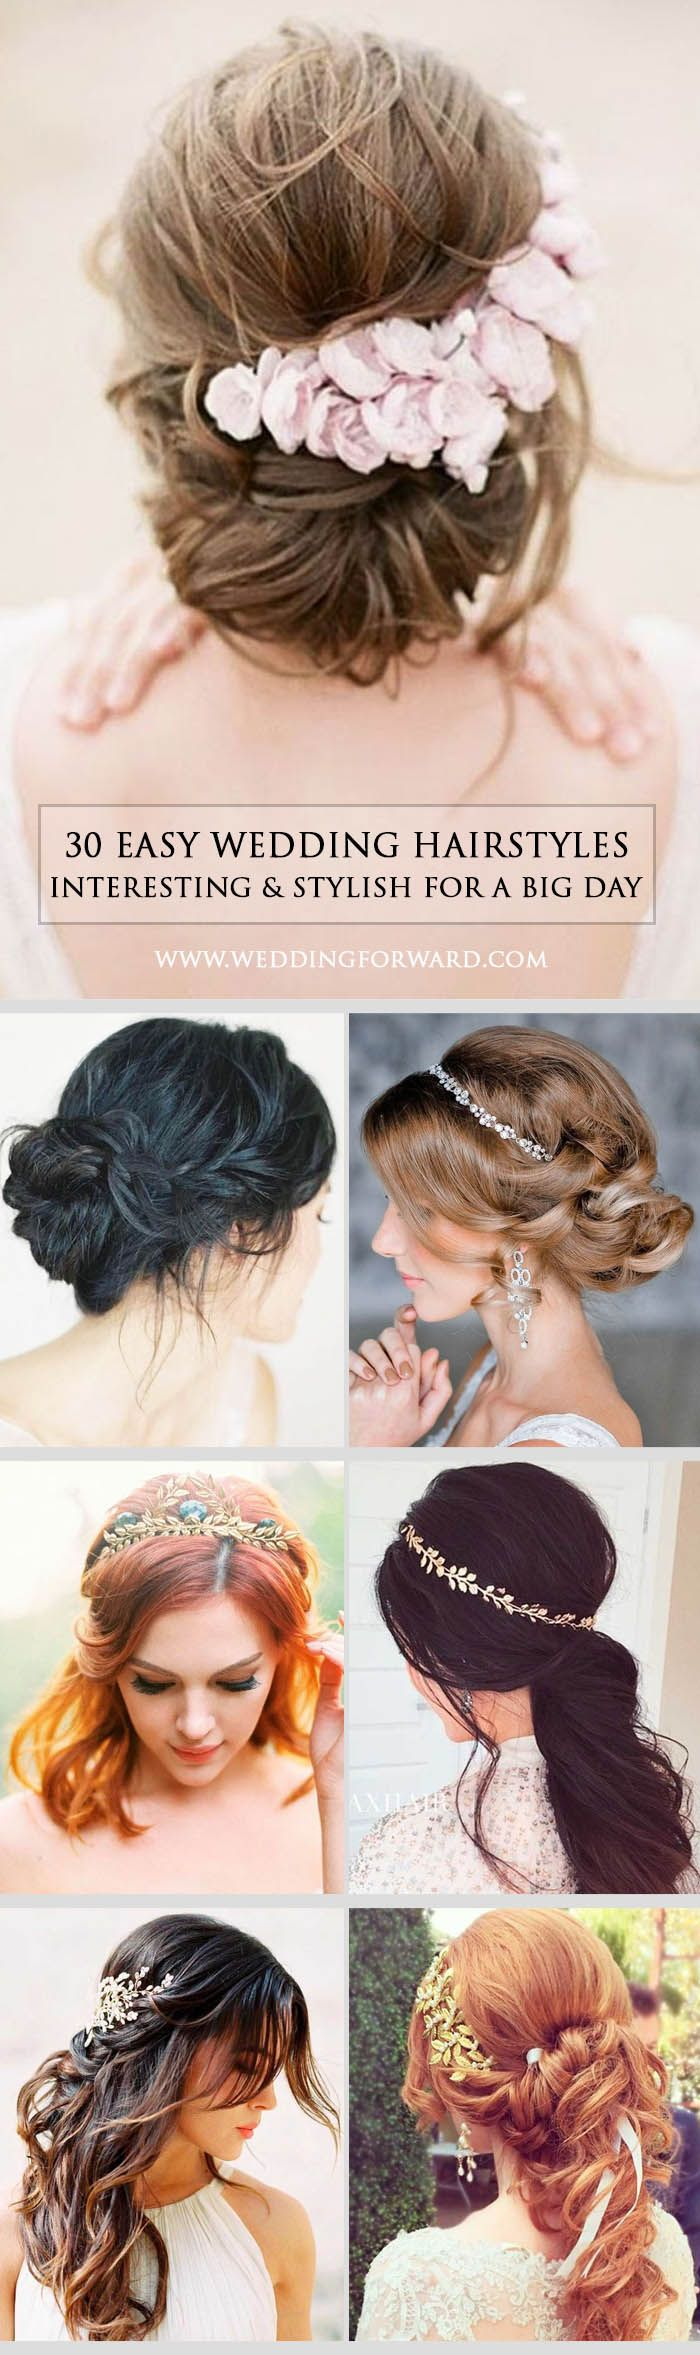 30 Stylish Easy Wedding Hairstyles ❤ You can choose stylish easy wedding hairstyles from our sharing pictures depending upon type of hair texture, length and face cut. See more: http://www.weddingforward.com/easy-wedding-hairstyles/ #weddings #hairstyles